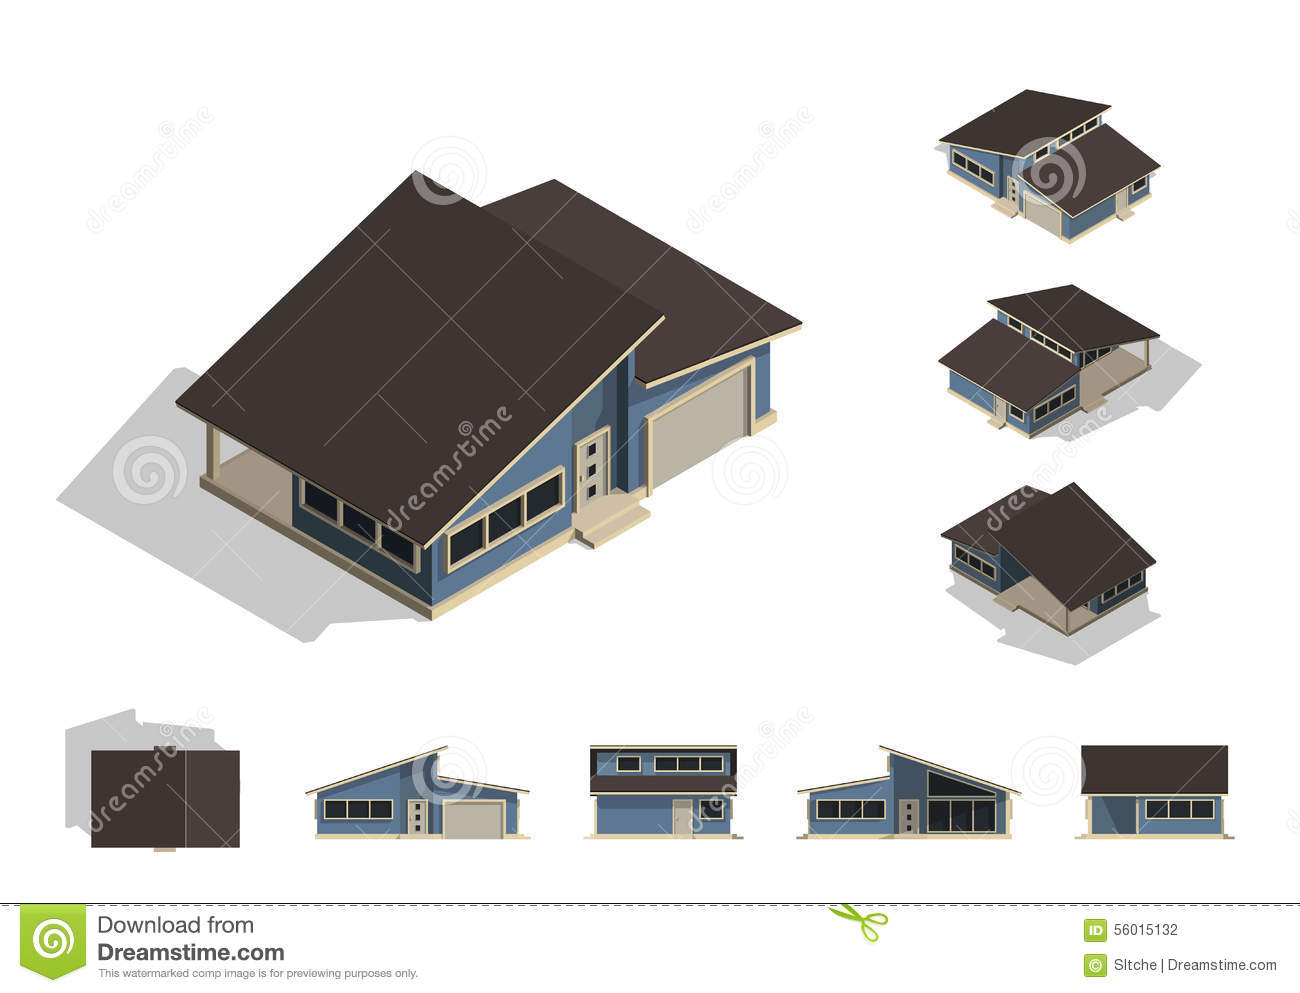 Set of isolated house building kit creation detailed urban and rural house concept design in for House design concept